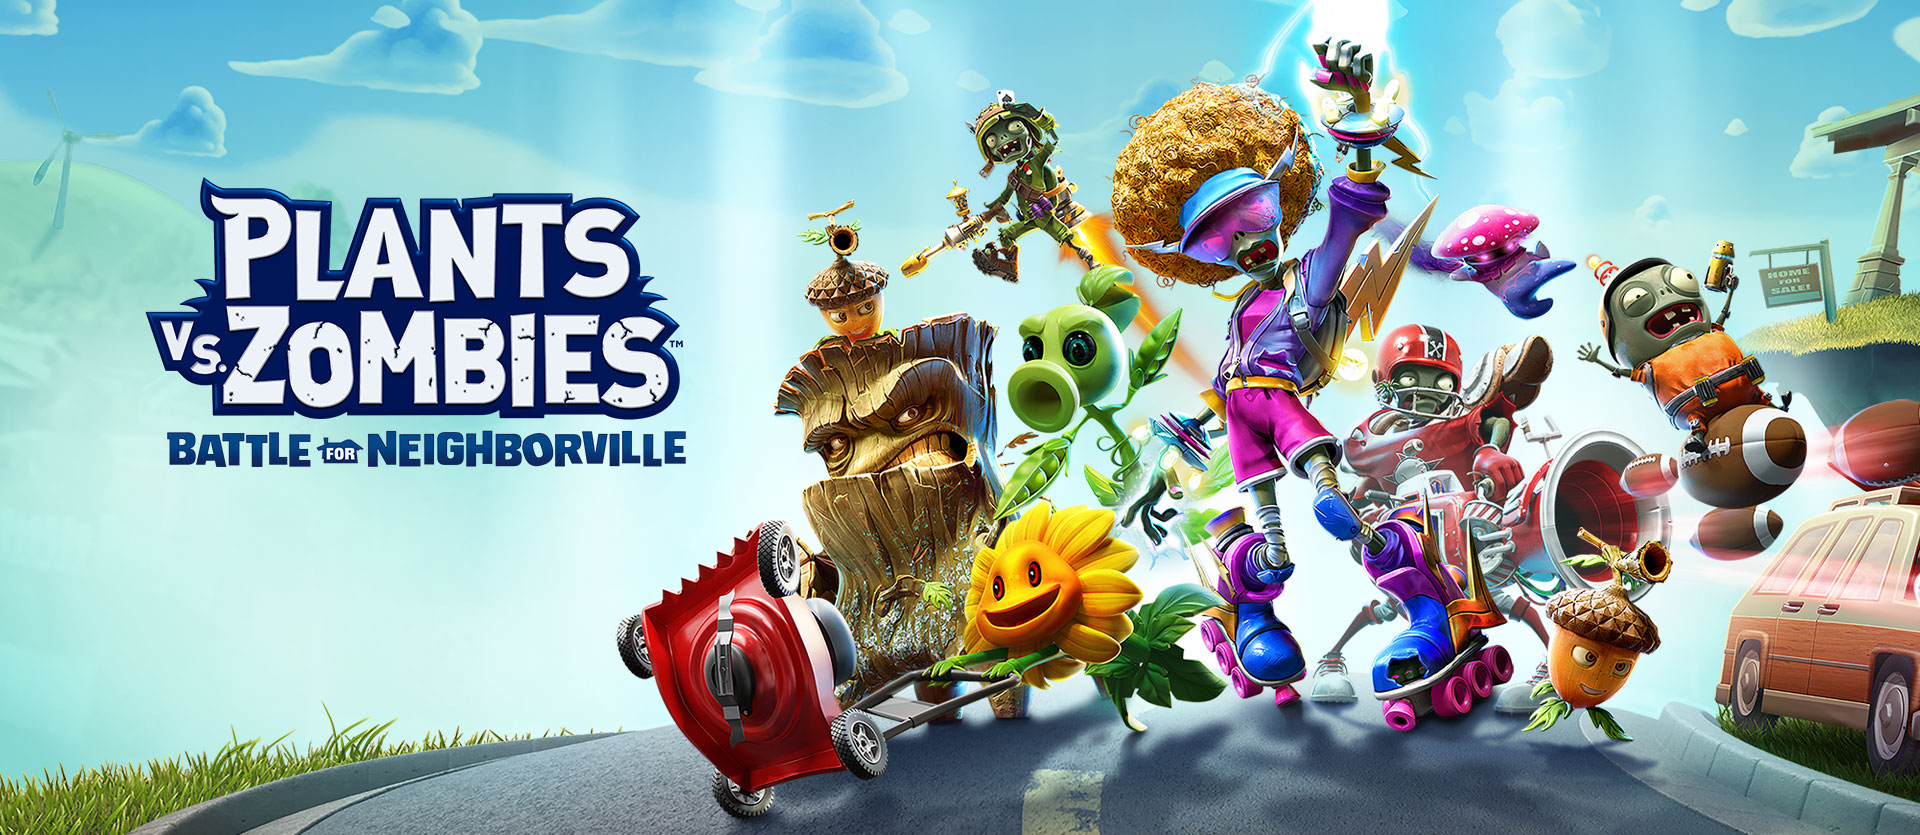 Plants vs. Zombies: Battle for Neighborville, several characters posing on a street